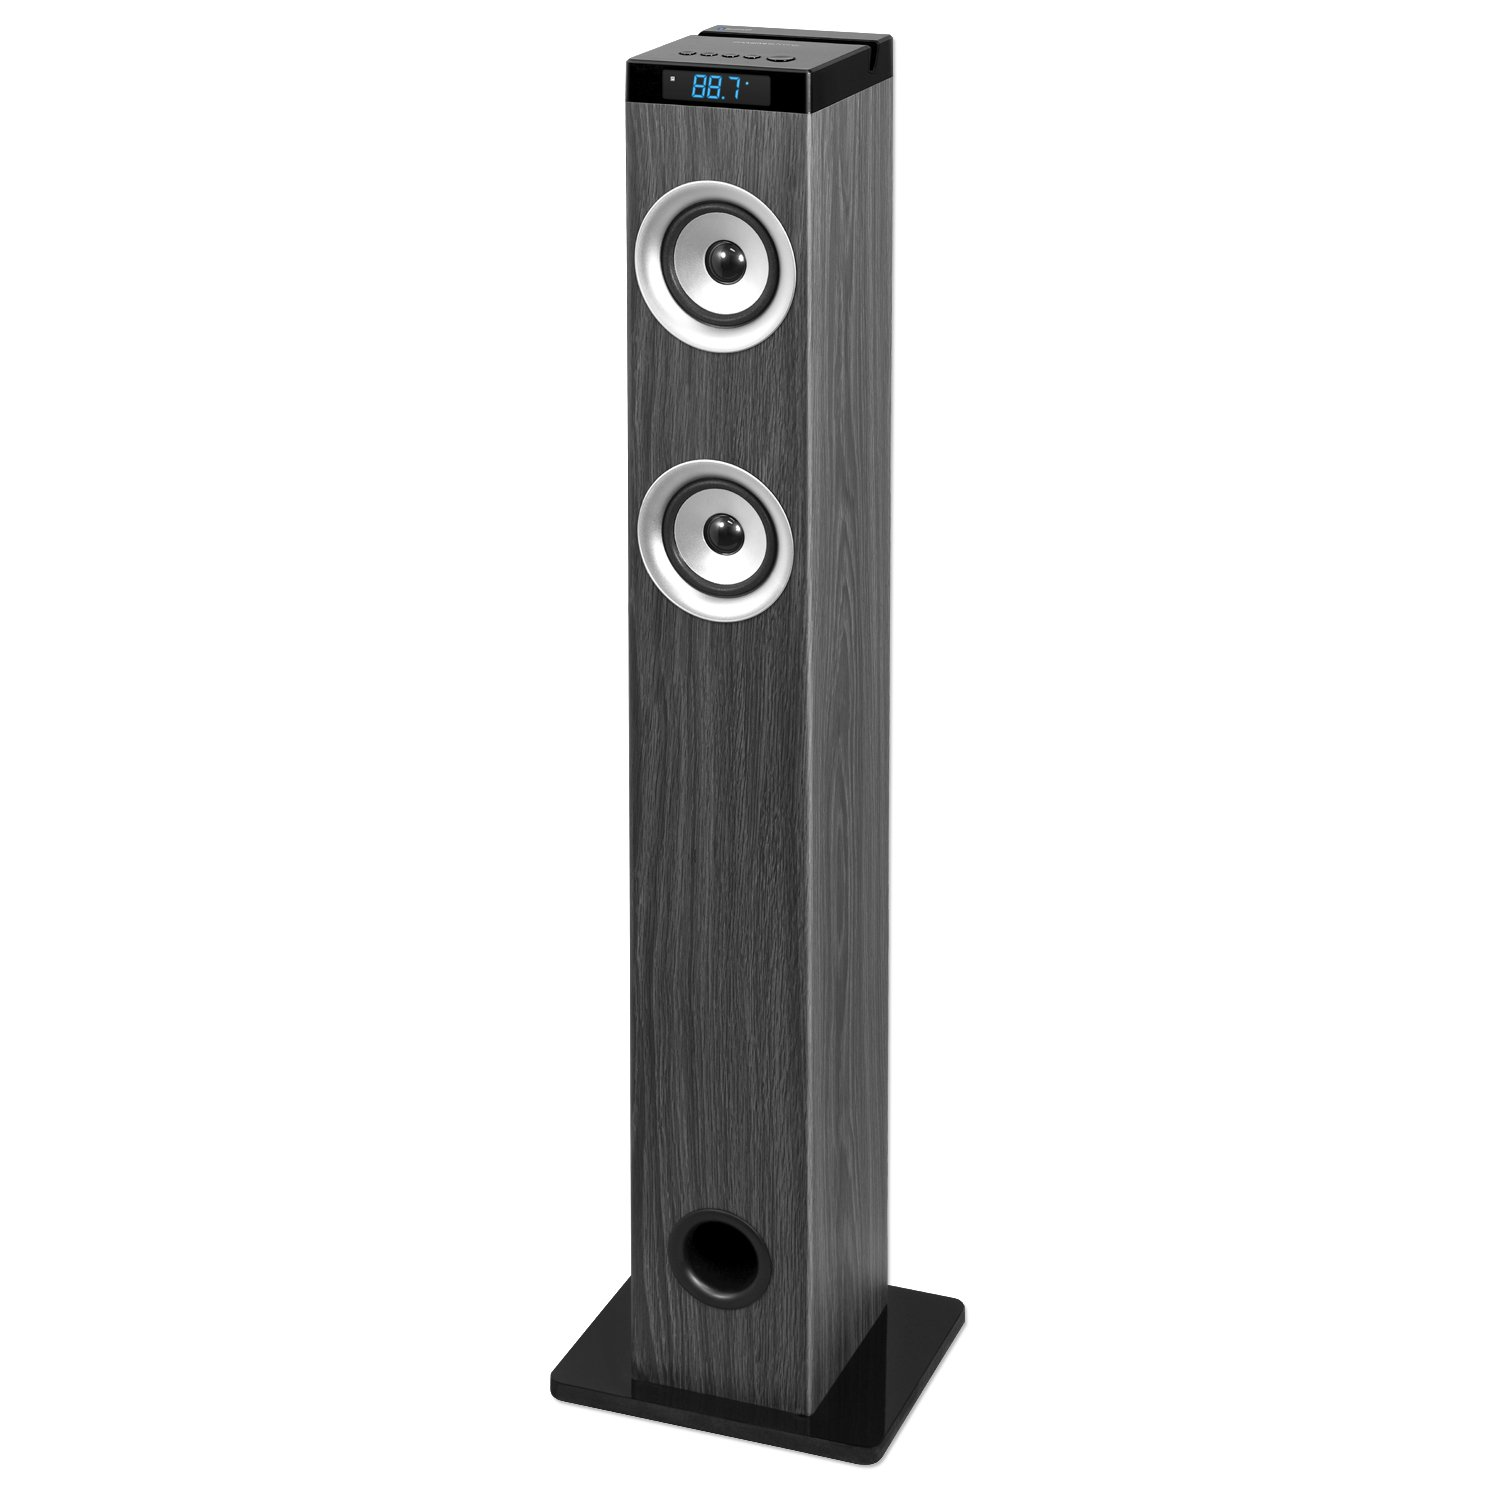 Innovative Technology 40-in Tall Tower Bluetooth Stereo System with Wood Finish, Gray Wood Grain by Innovative Technology